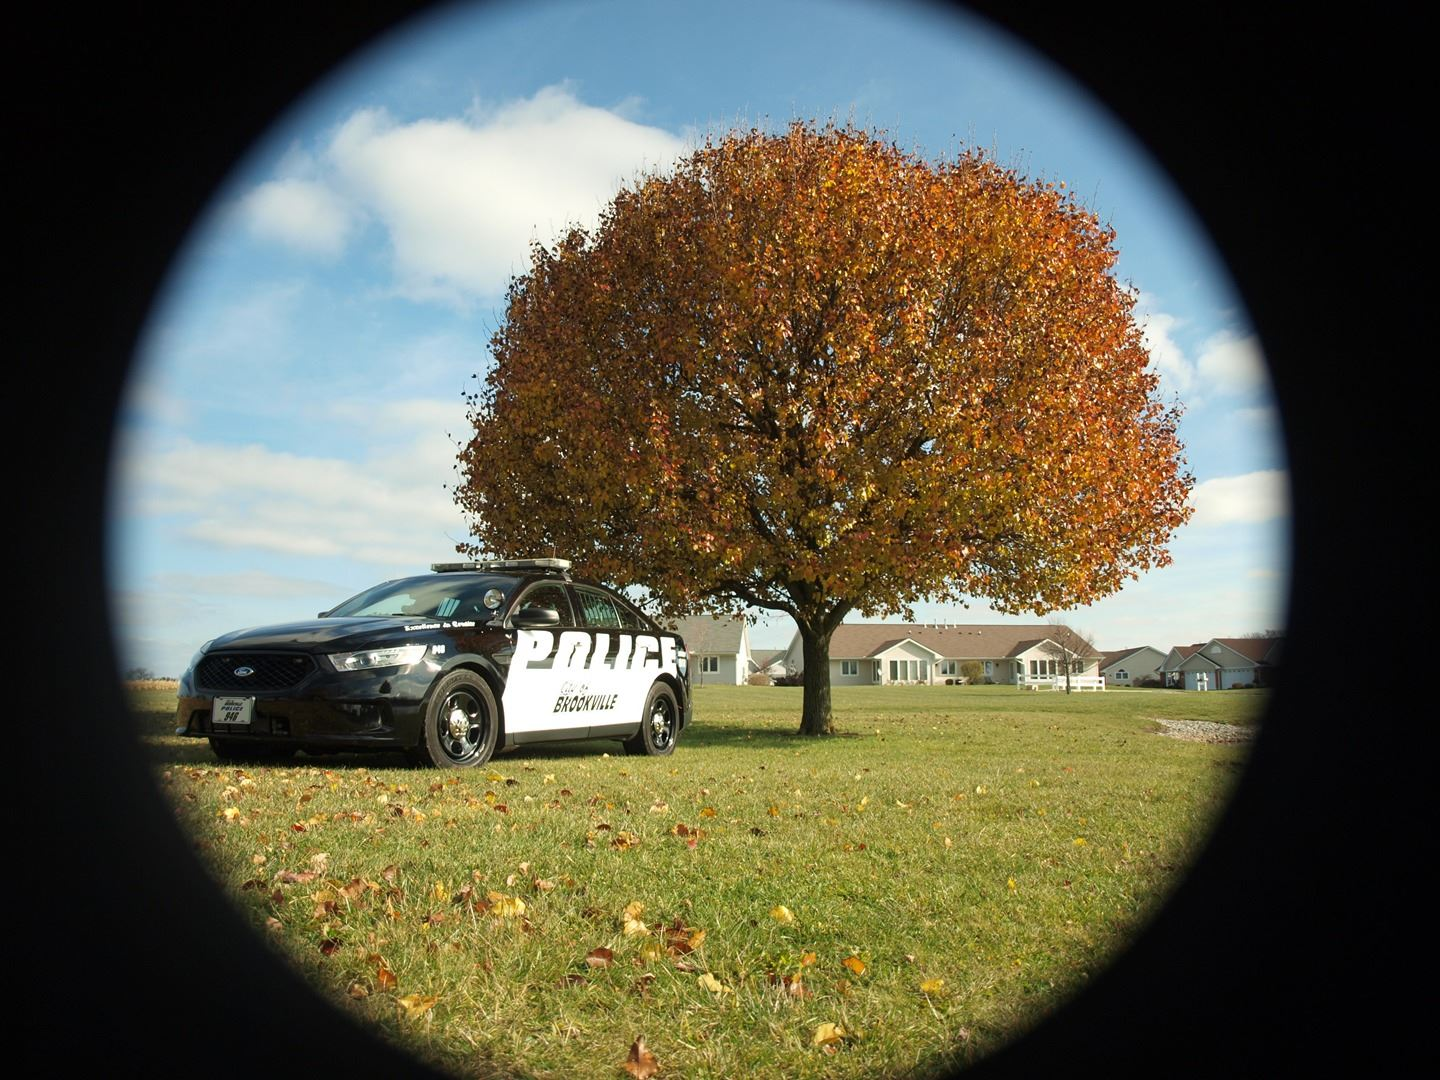 Police Patrol Car Next to a Tree with Autumn Colored Leaves